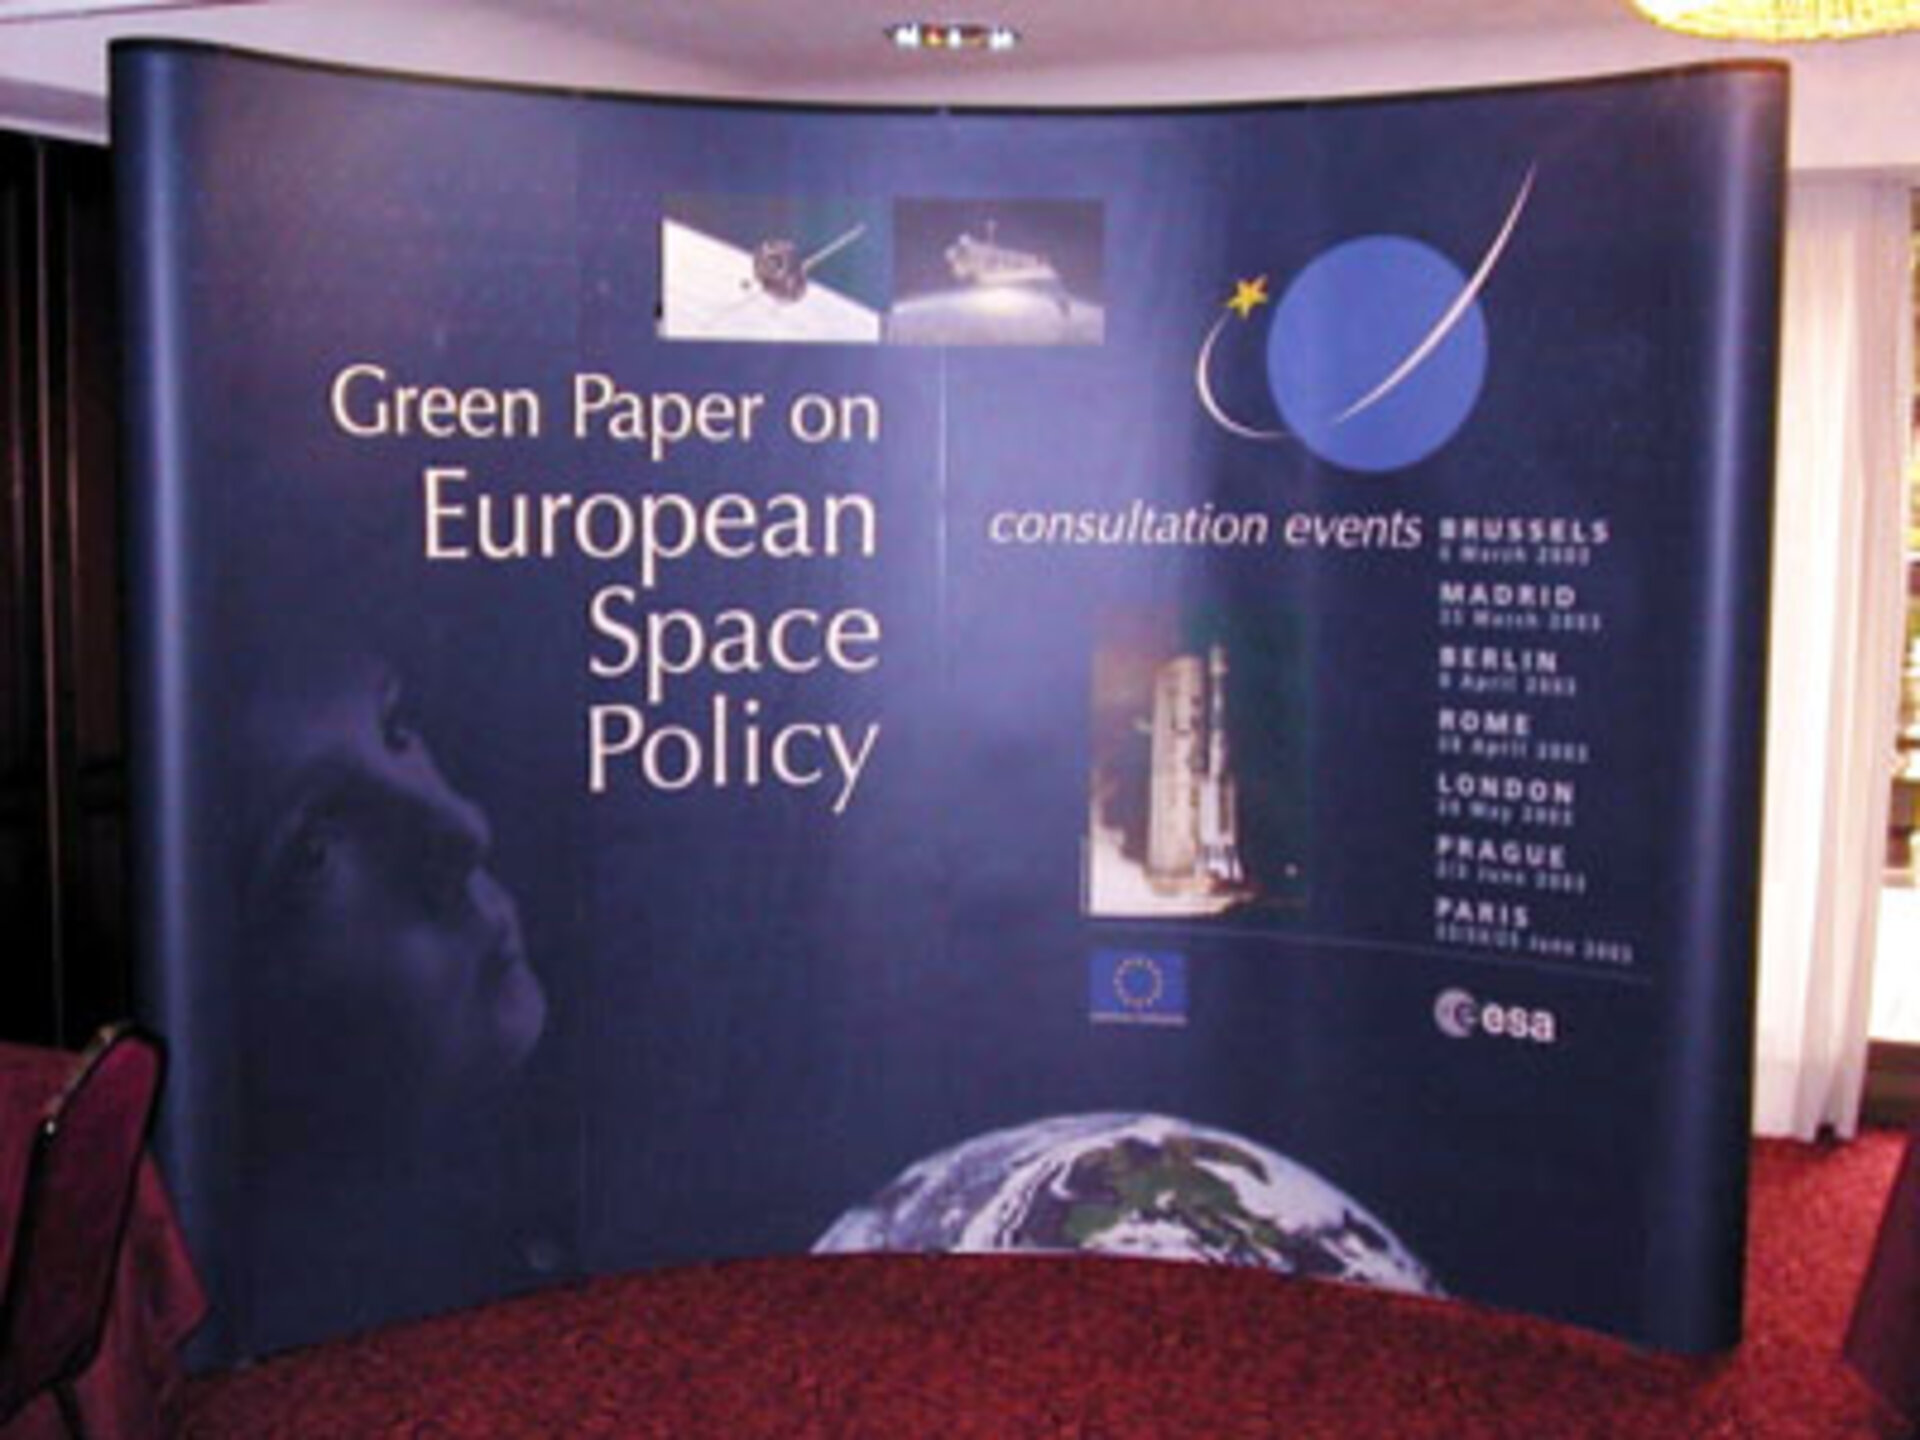 Green Paper consultation events